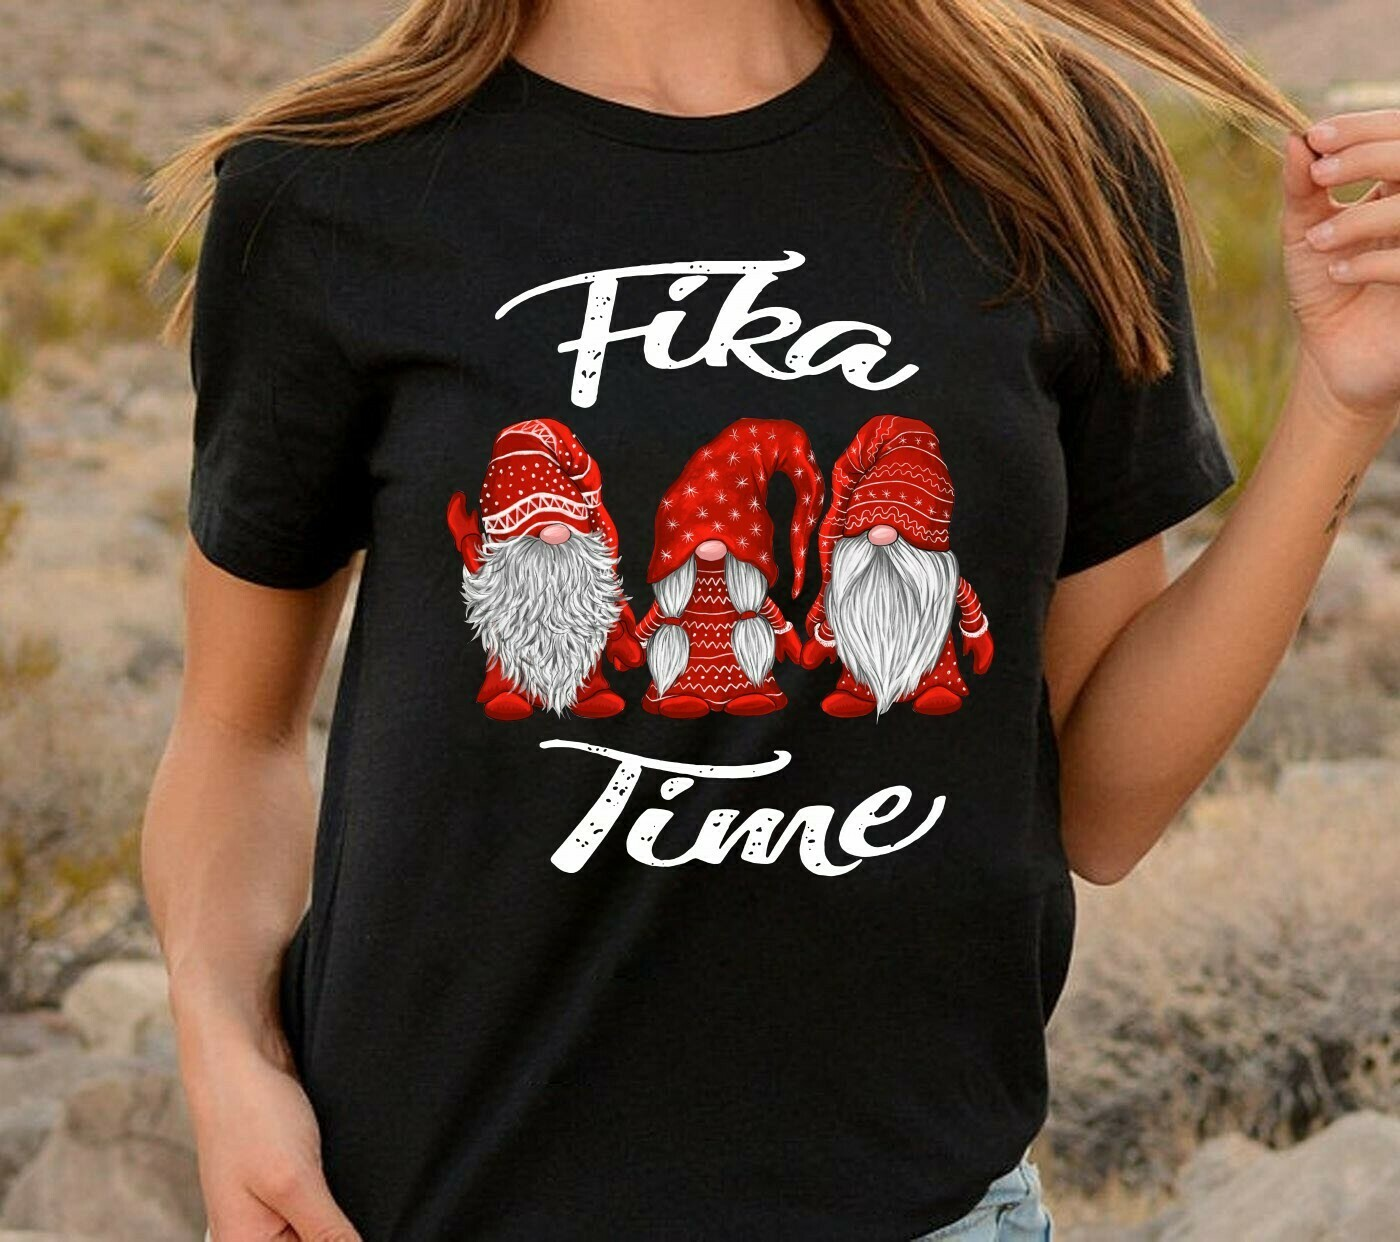 Fika Time Hanging With Red Gnomies Christmas T-Shirt,Three gnomes Ugly Sweater Christmas Tee,Plaid Funny Gnome Sweatshirt Long Sleeve Sweatshirt Hoodie Jolly Family Gifts